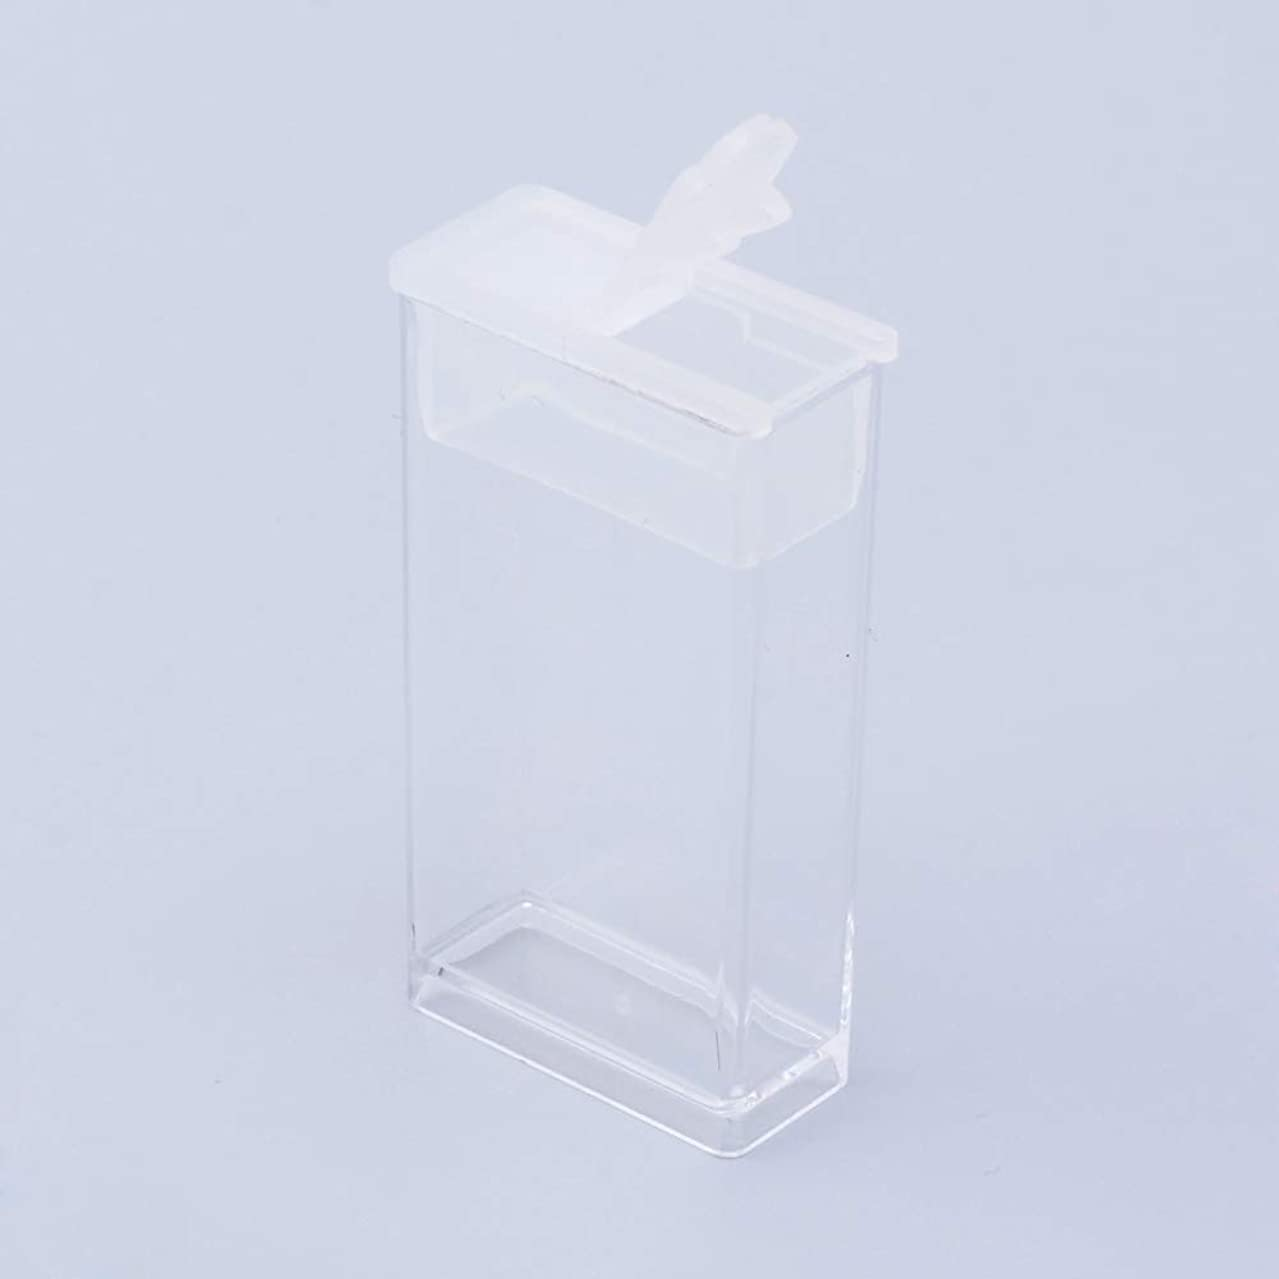 NBEADS 6 Pcs Clear Plastic Rectangle Mini Beads Storage Containers Box Case with lid for Small Items, Pills, Herbs, Tiny Bead and Jewerlry Findings